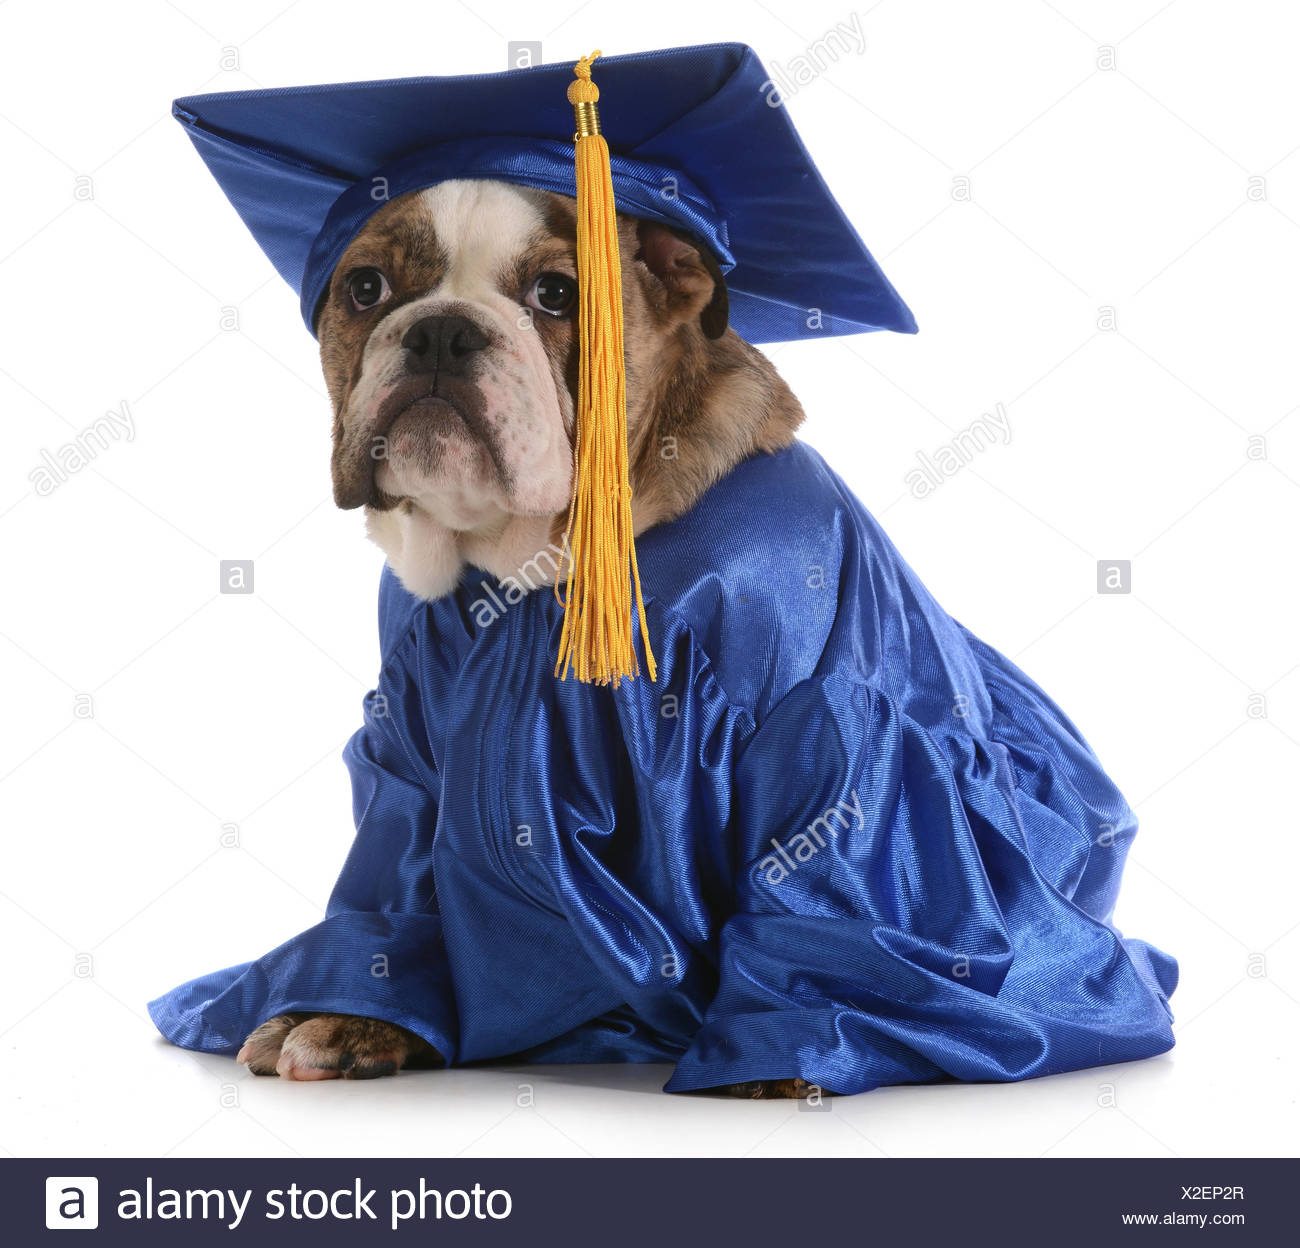 Academics Cut Out Stock Images & Pictures - Alamy